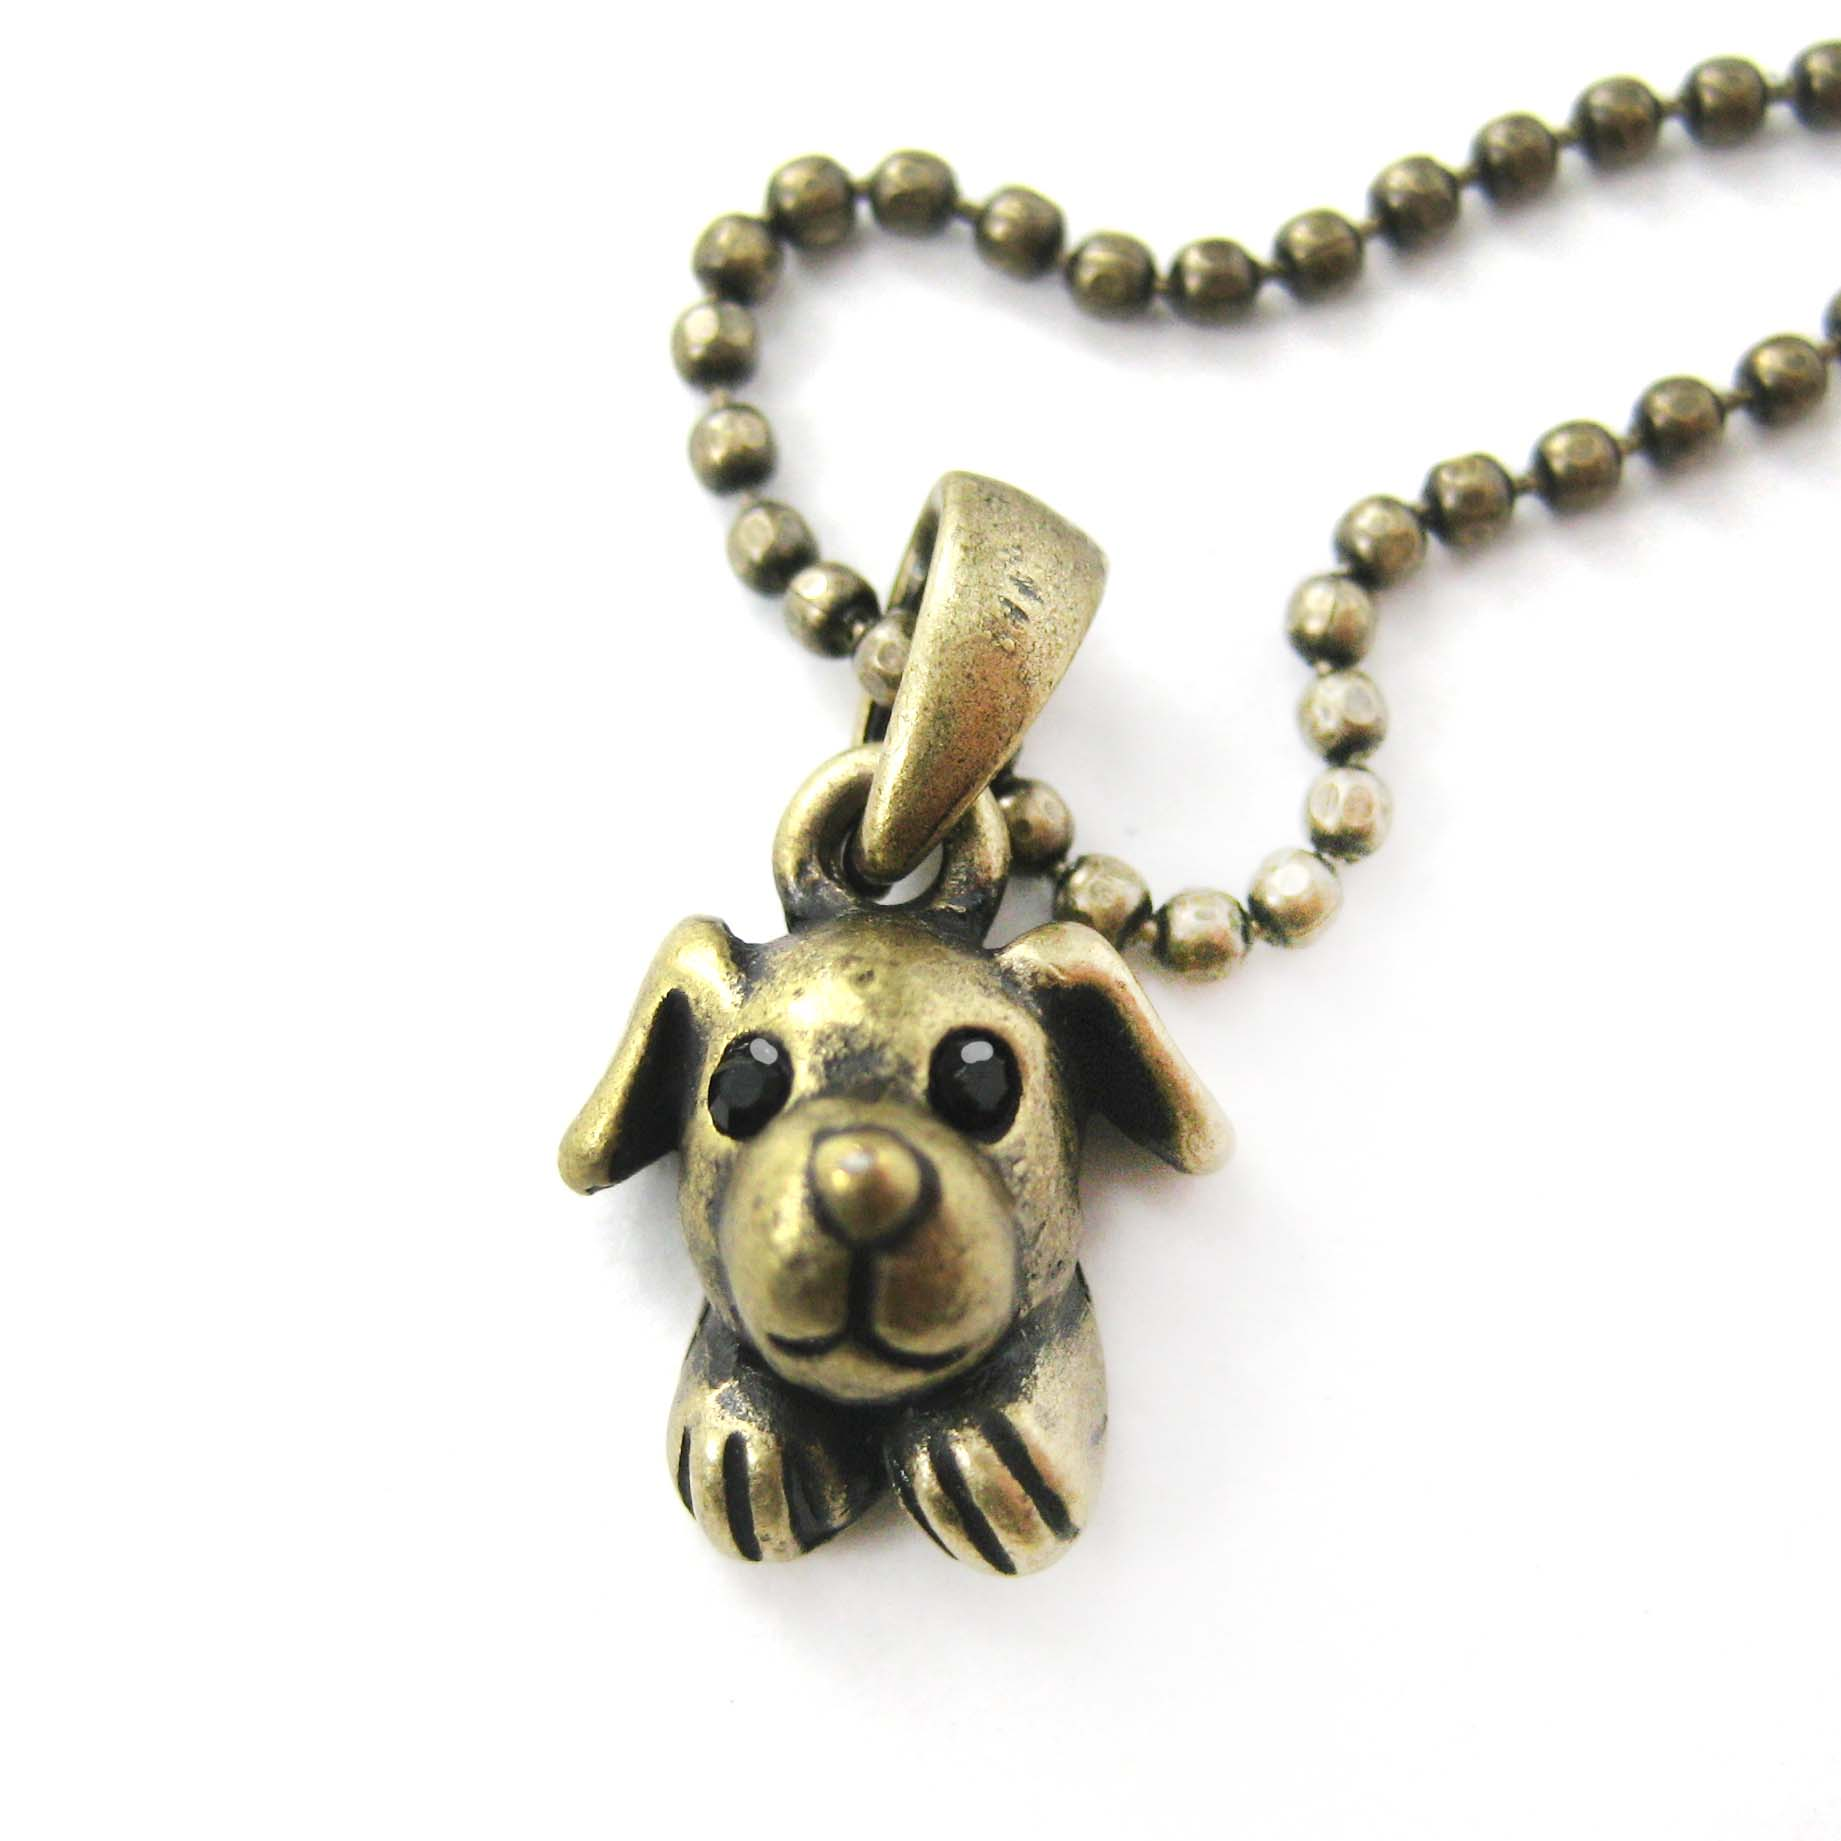 adorable puppy animal charm pendant necklace in bronze